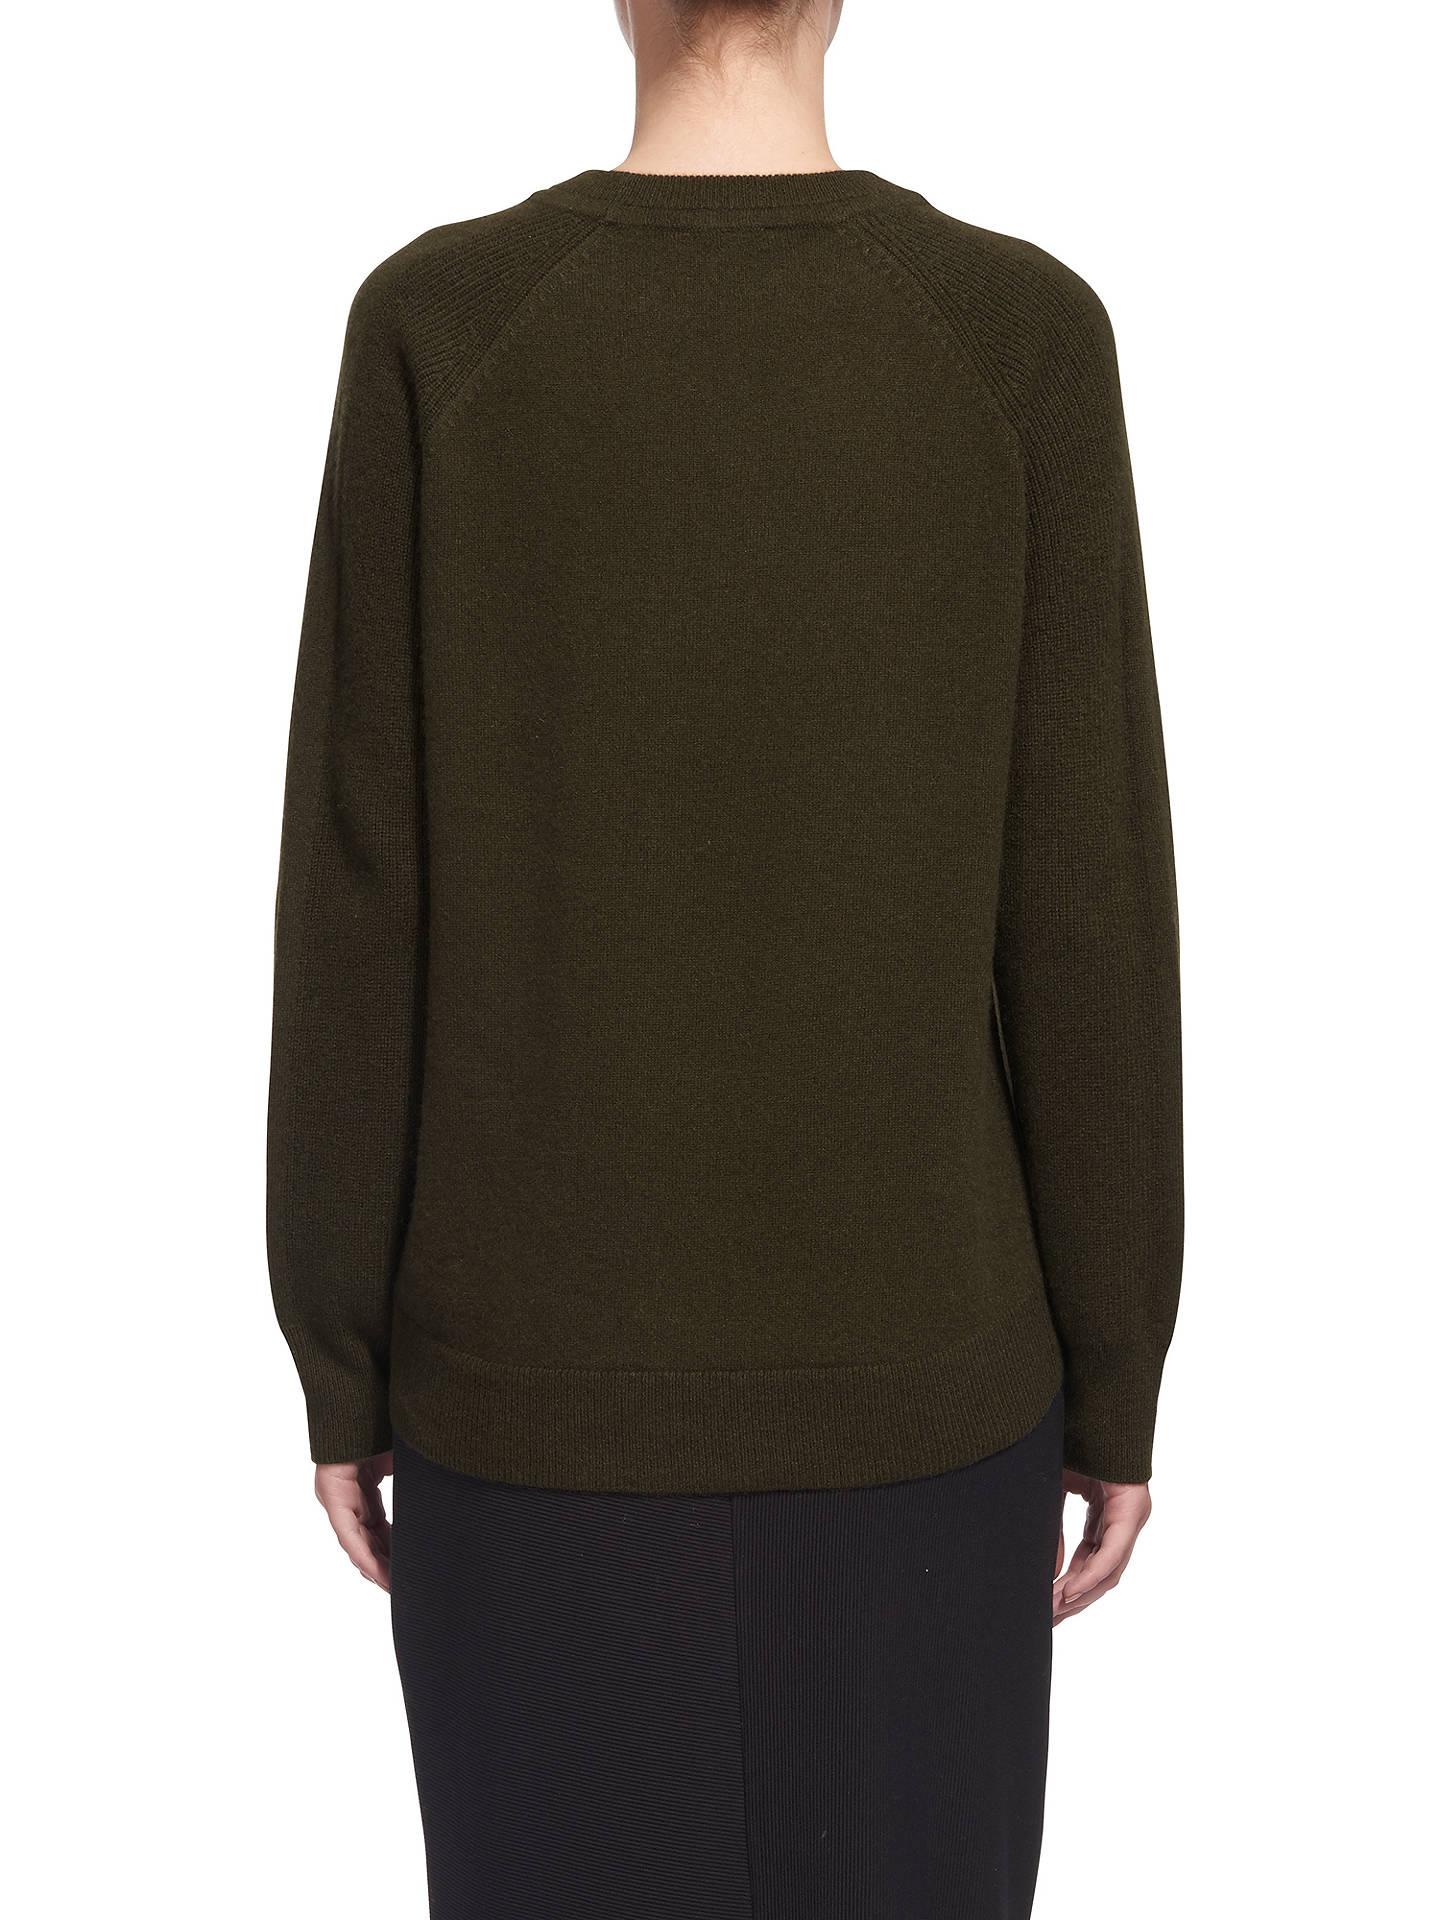 BuyWhistles Ribbed Sleeve Cashmere Jumper, Khaki, XS Online at johnlewis.com